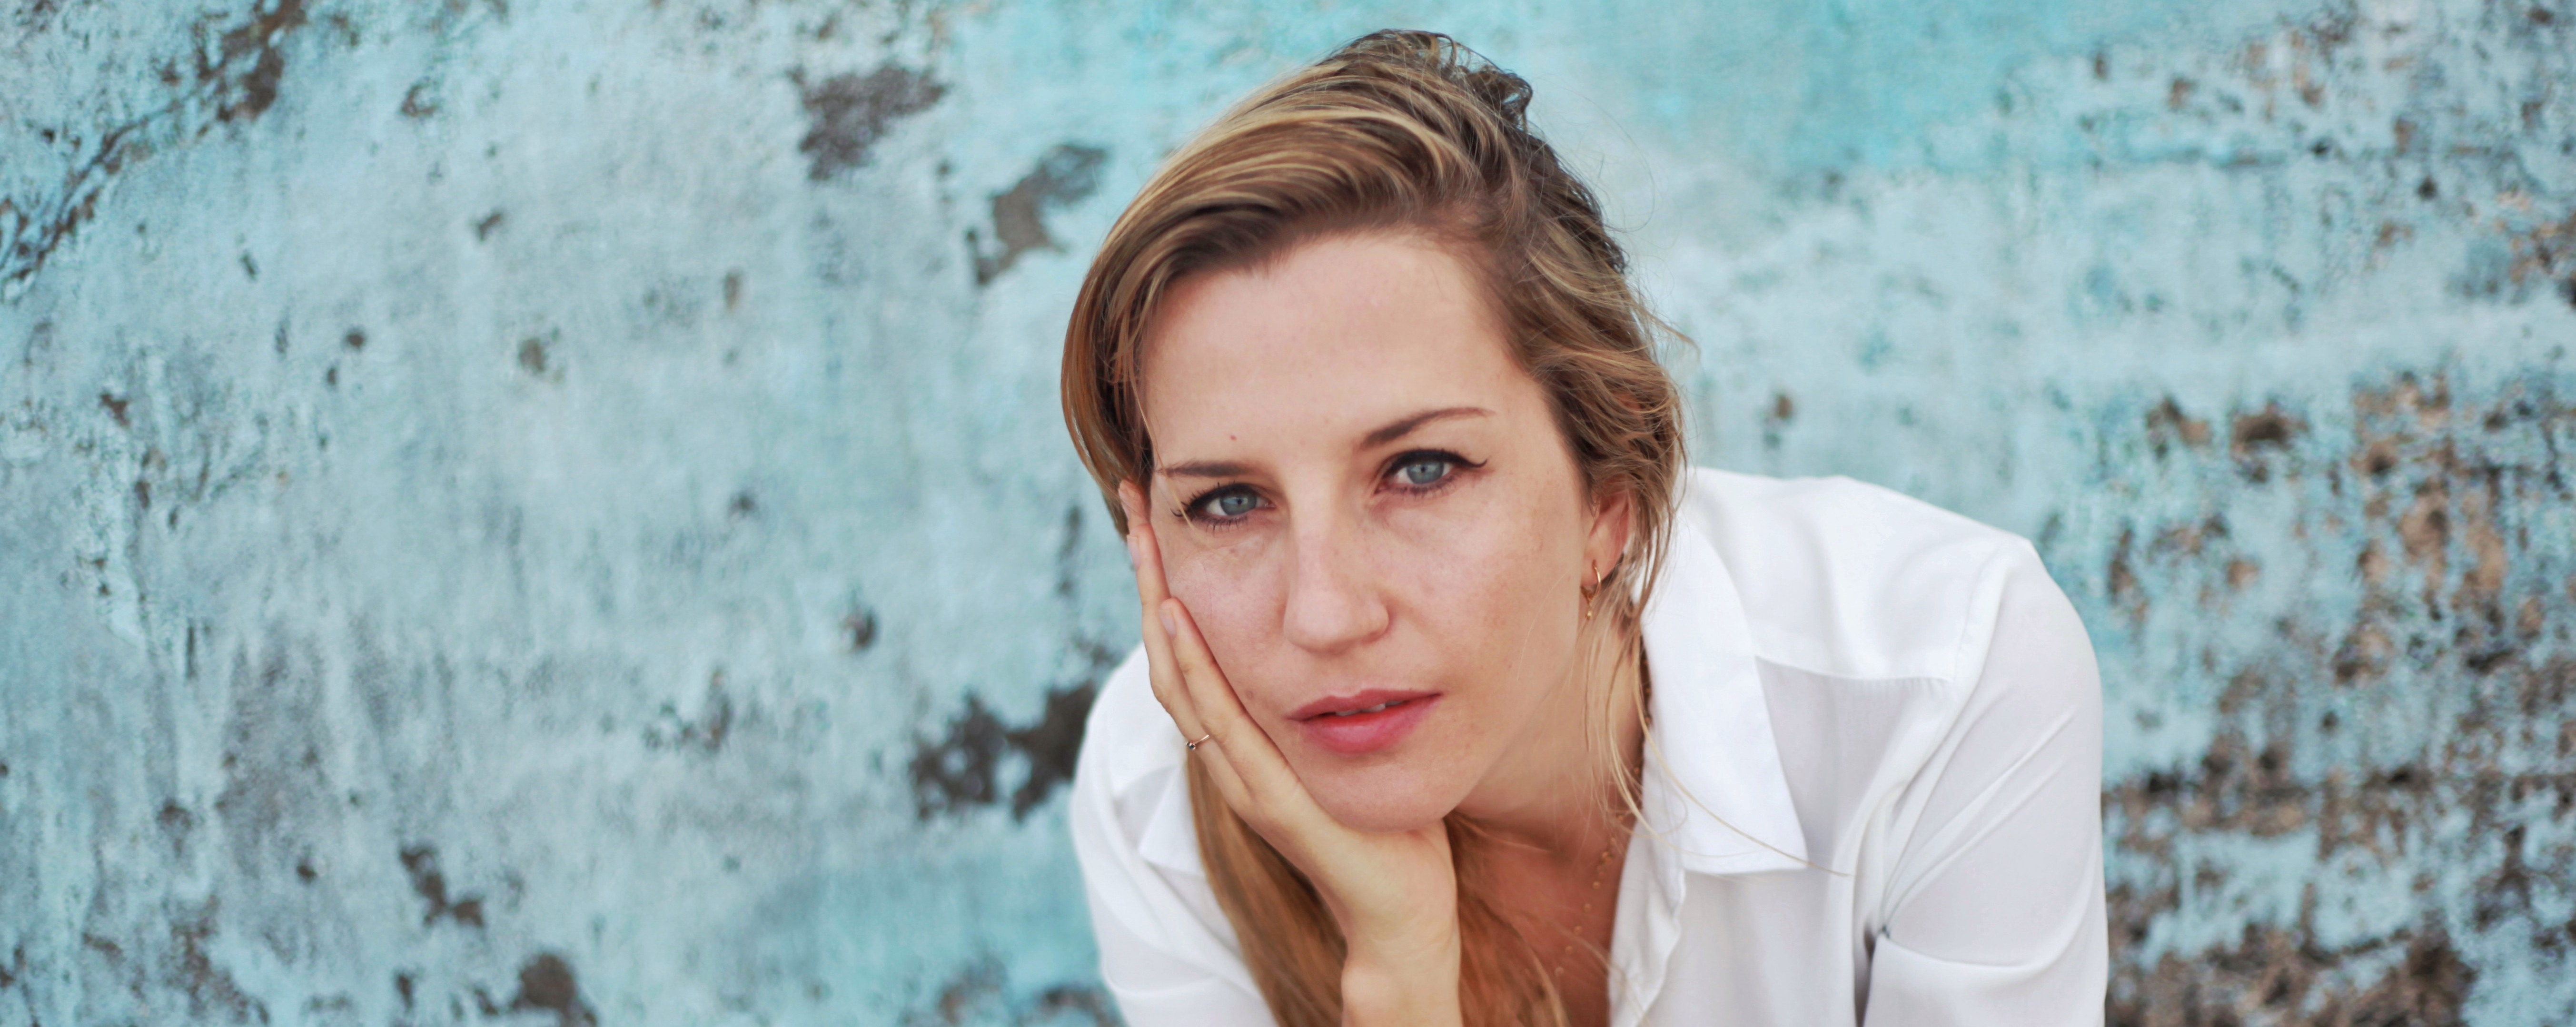 Interview with Anya Beyersdorf: How The Light Gets In, News